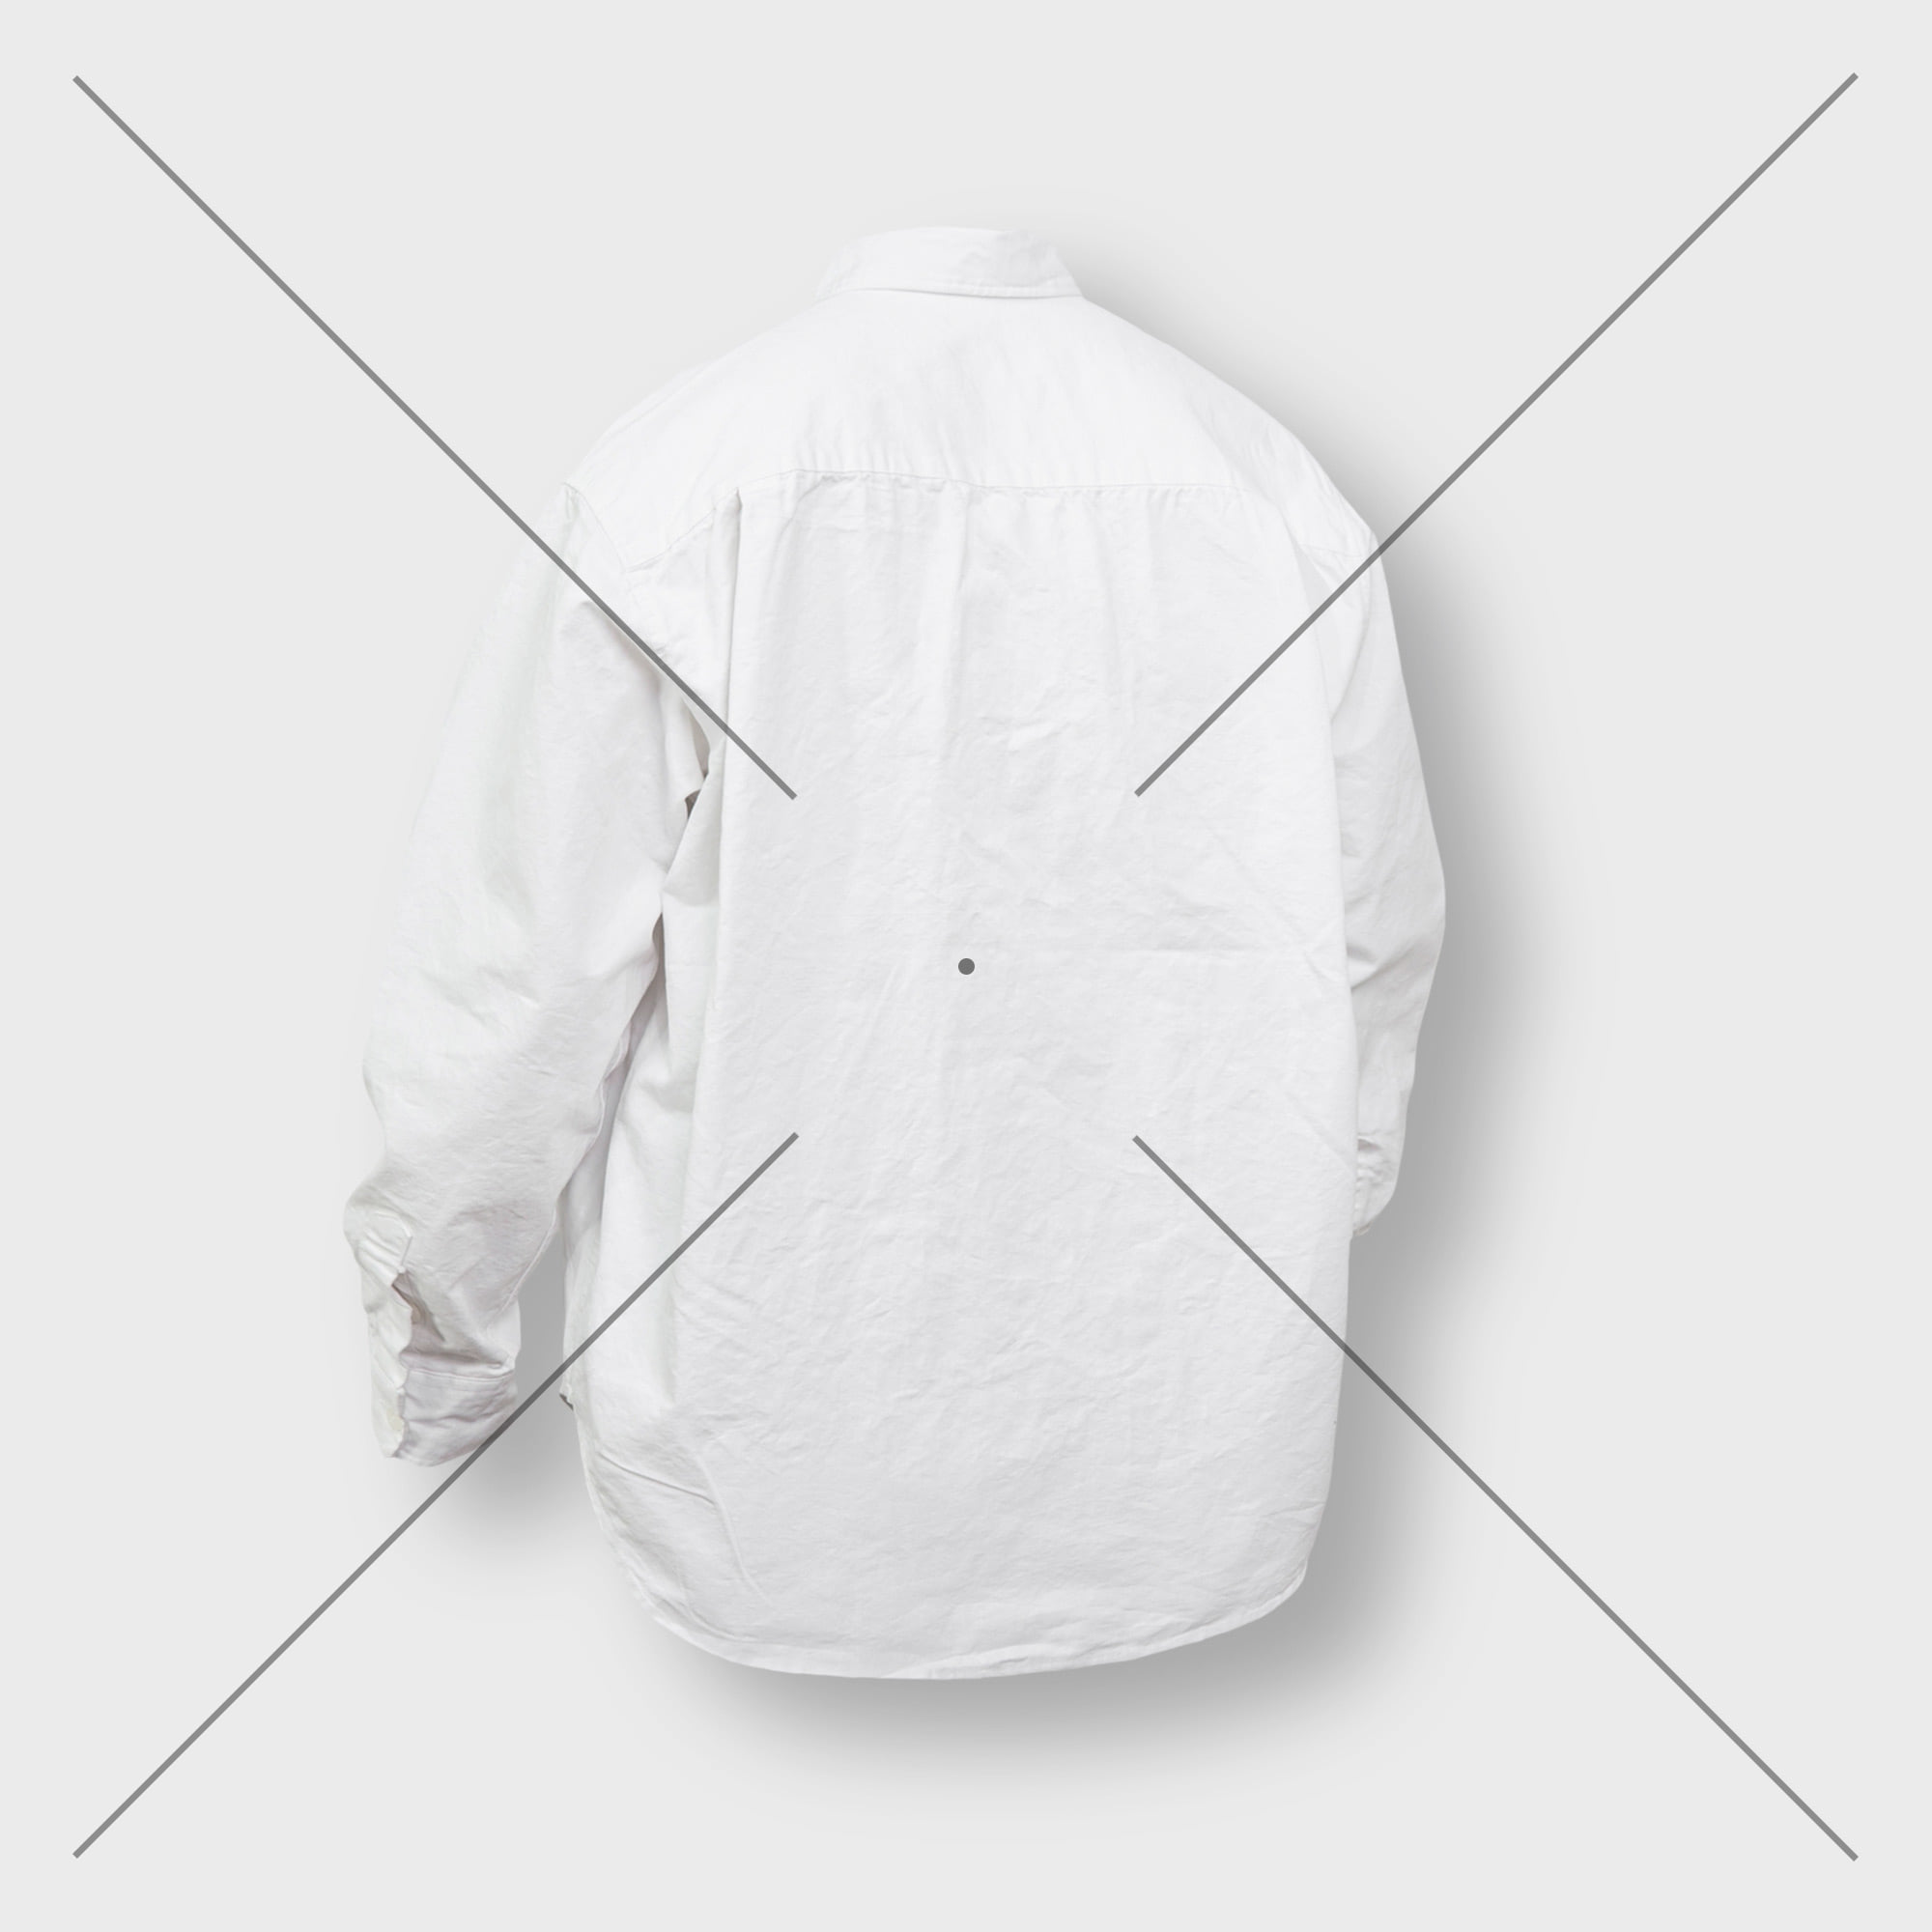 [AG] Oxford Wide Over Shirt - White